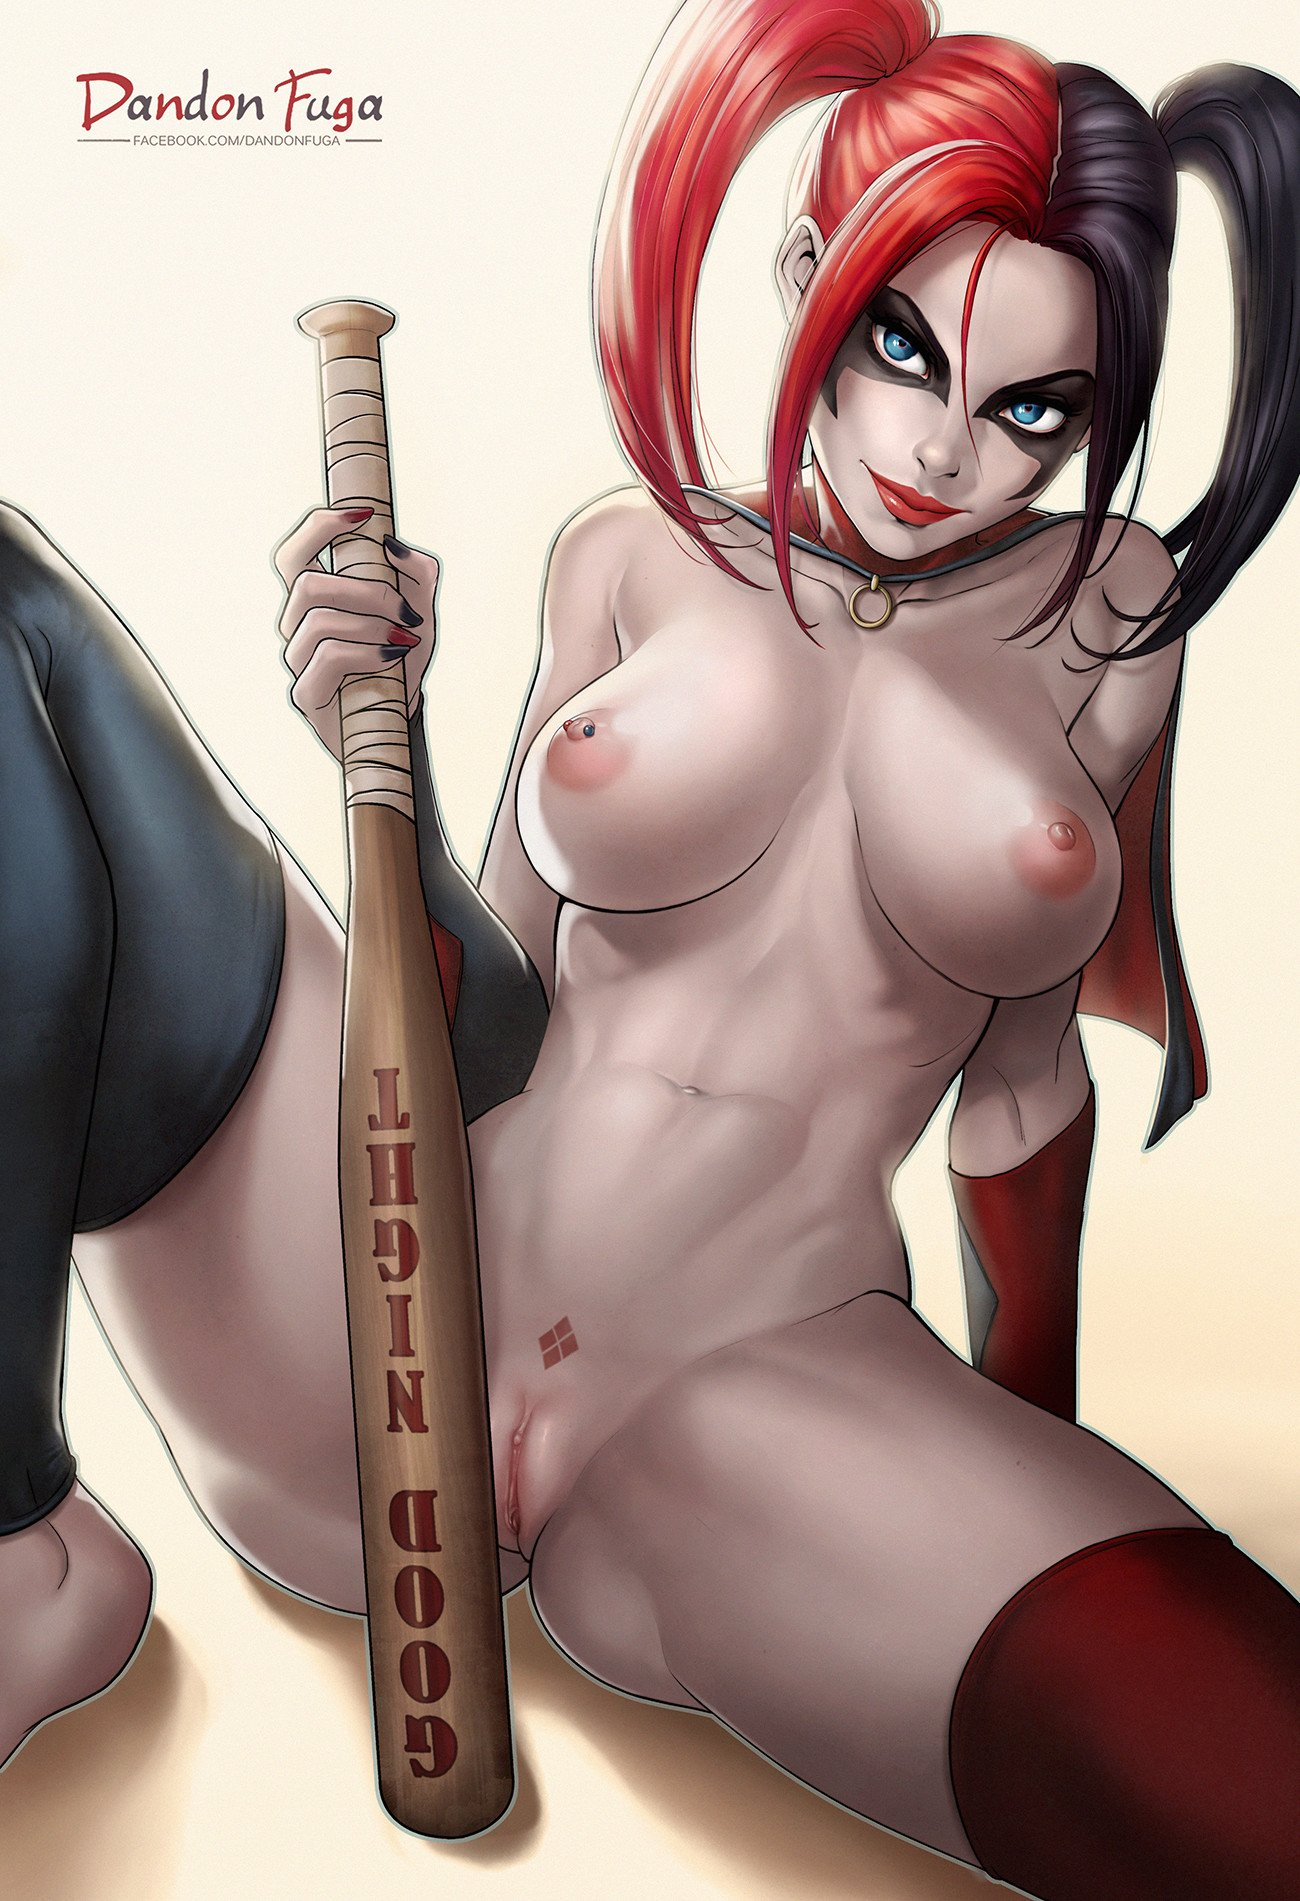 Sexy pics of harley quinn